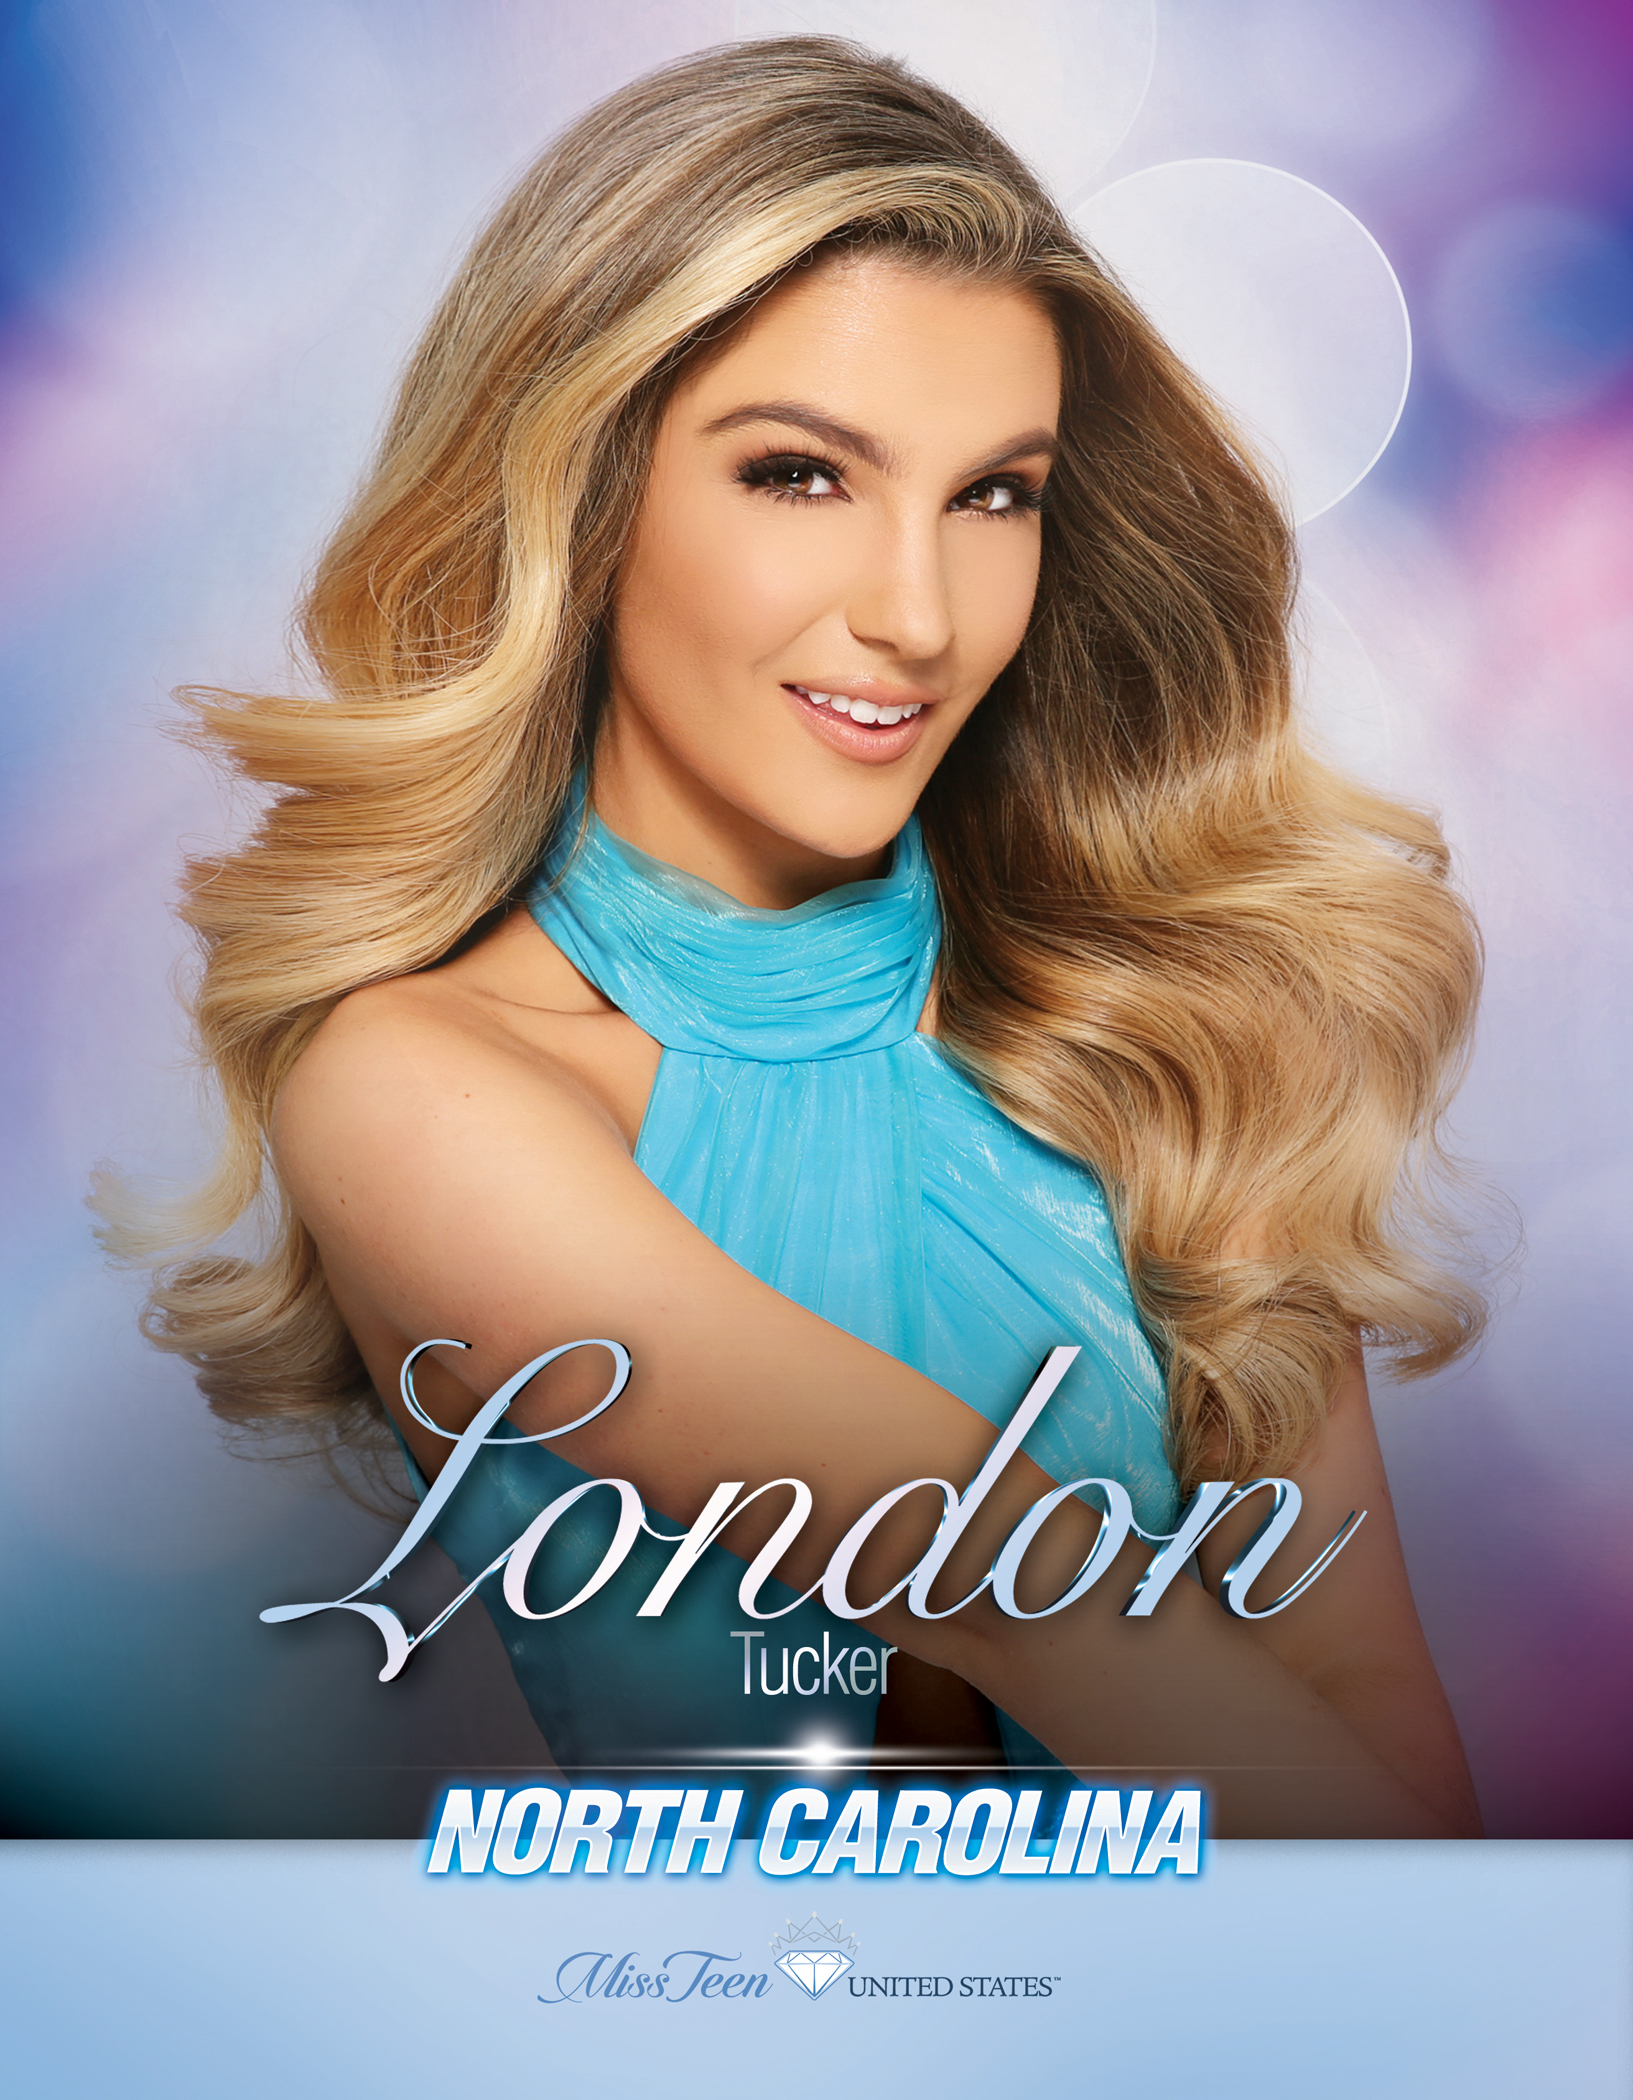 London Tucker Miss Teen North Carolina United States - 2019